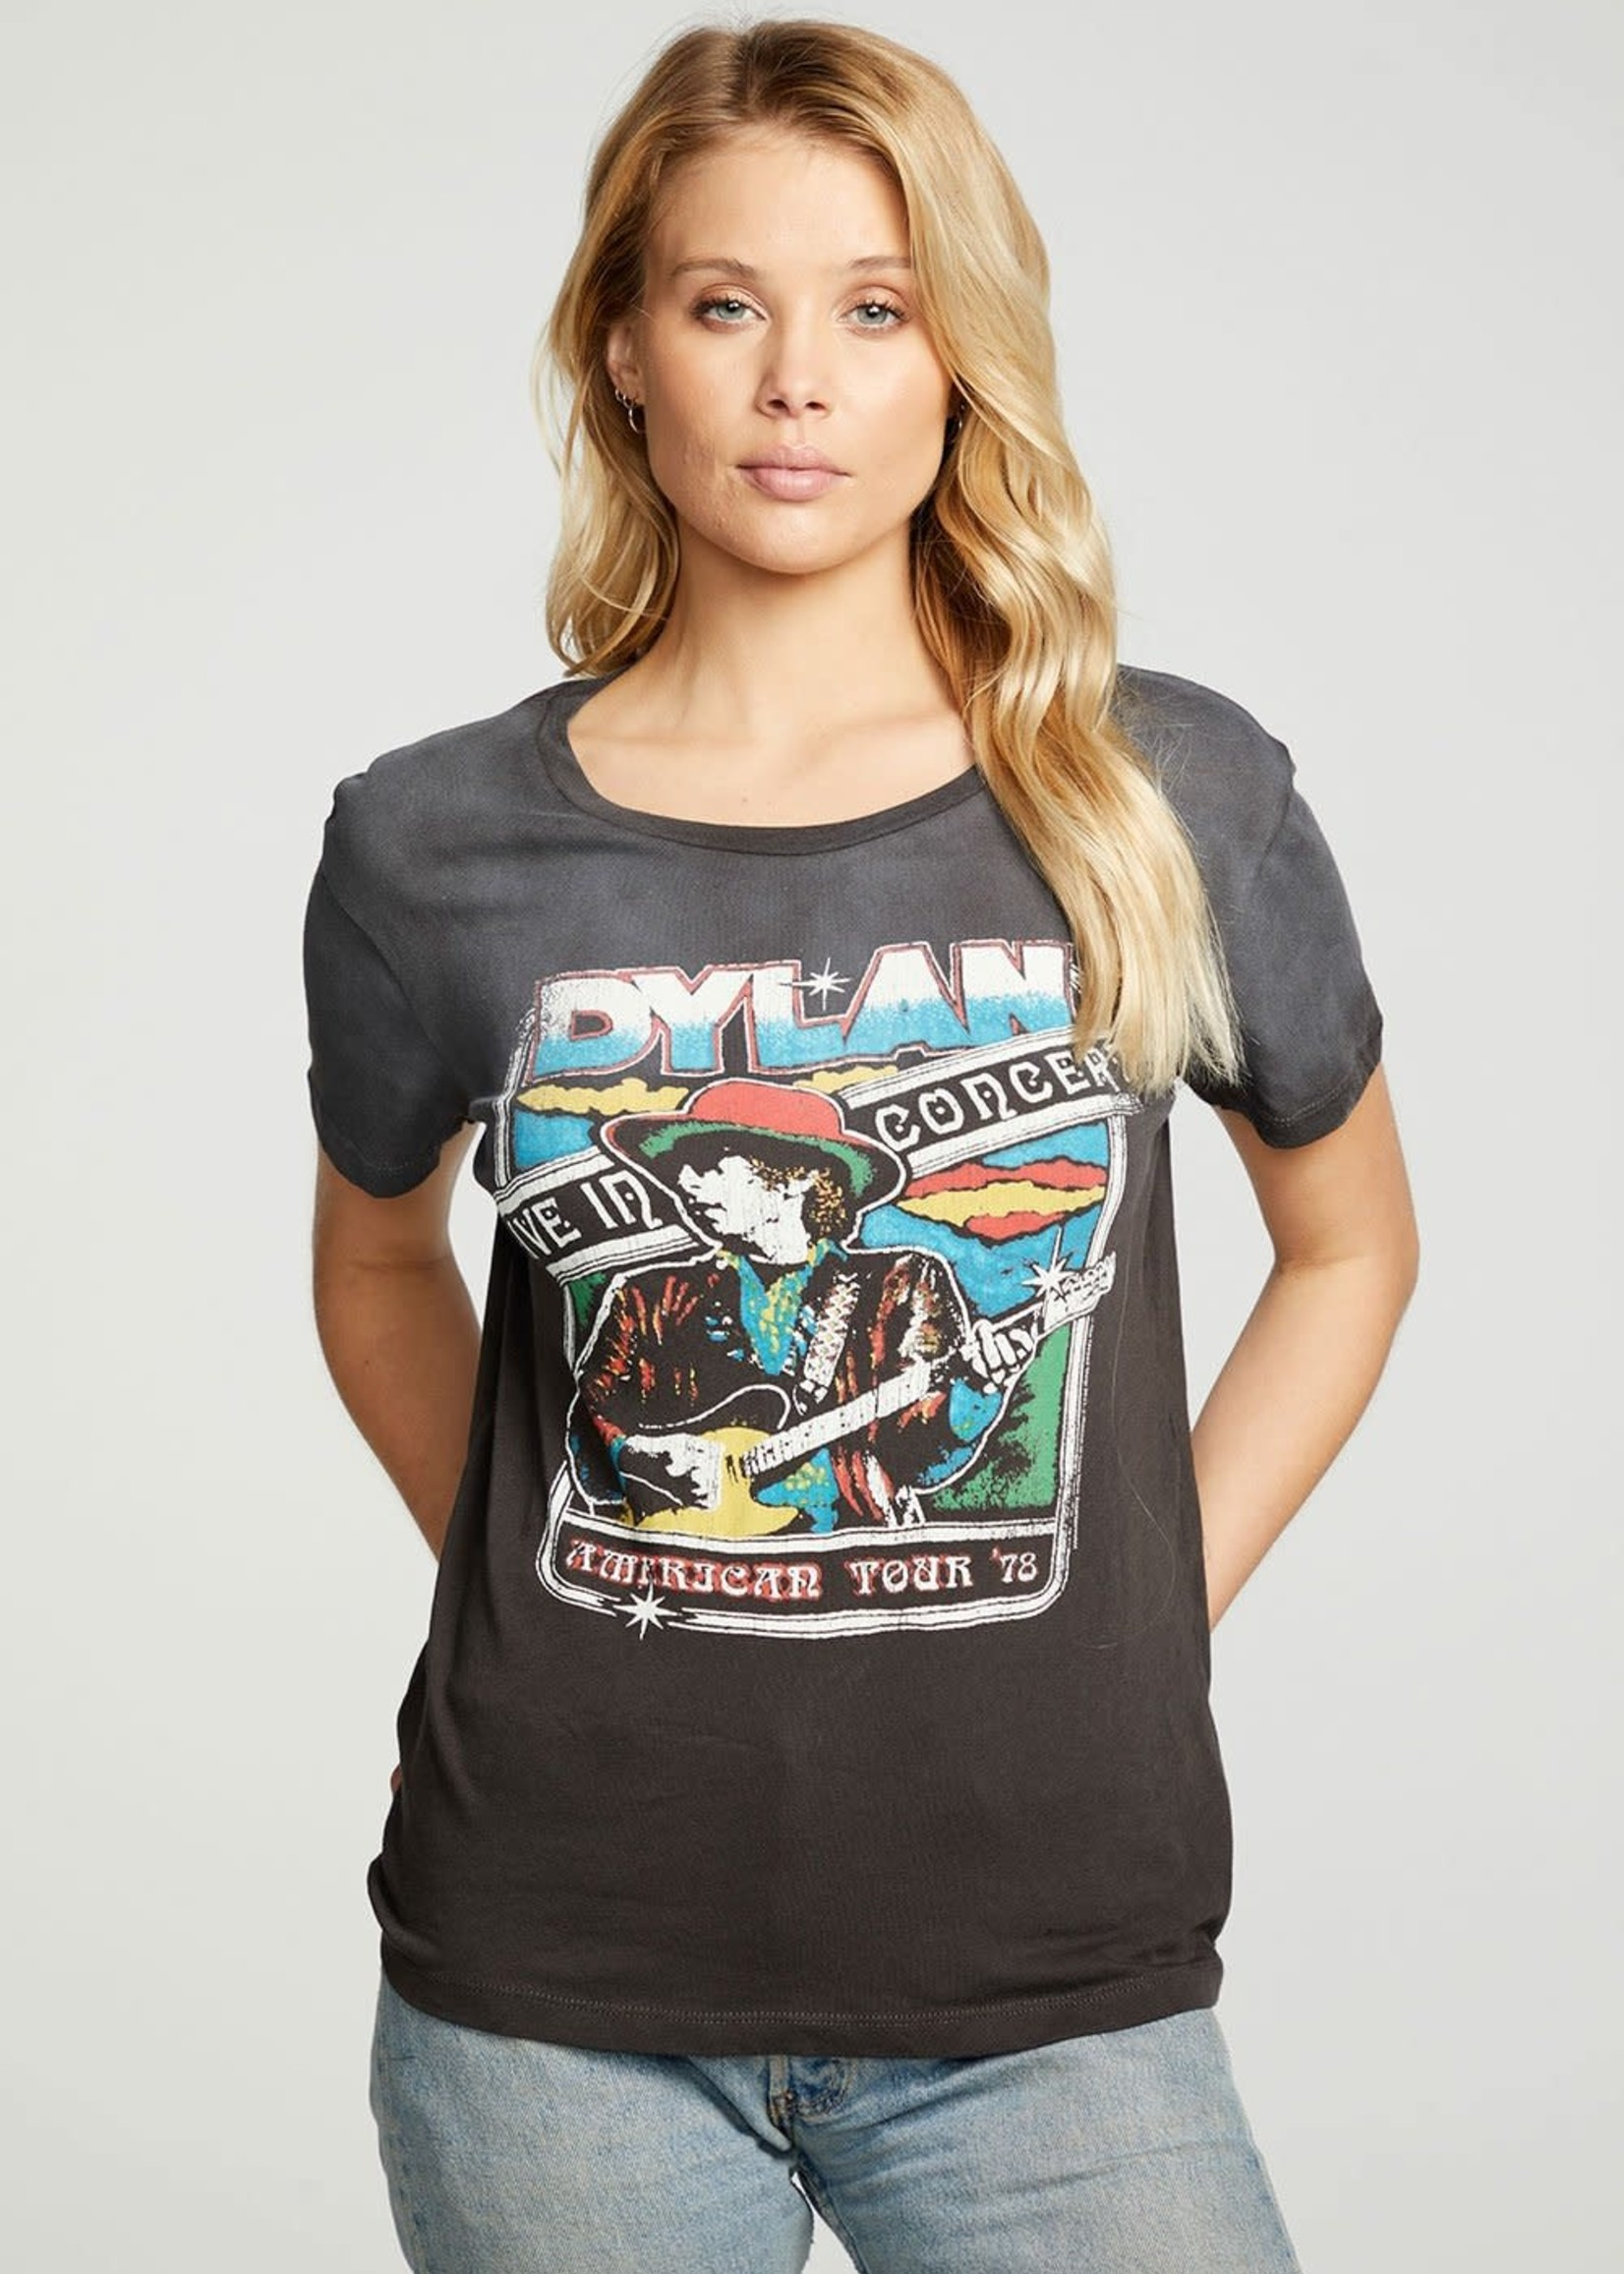 Bob Dylan - Live in Concert Tee